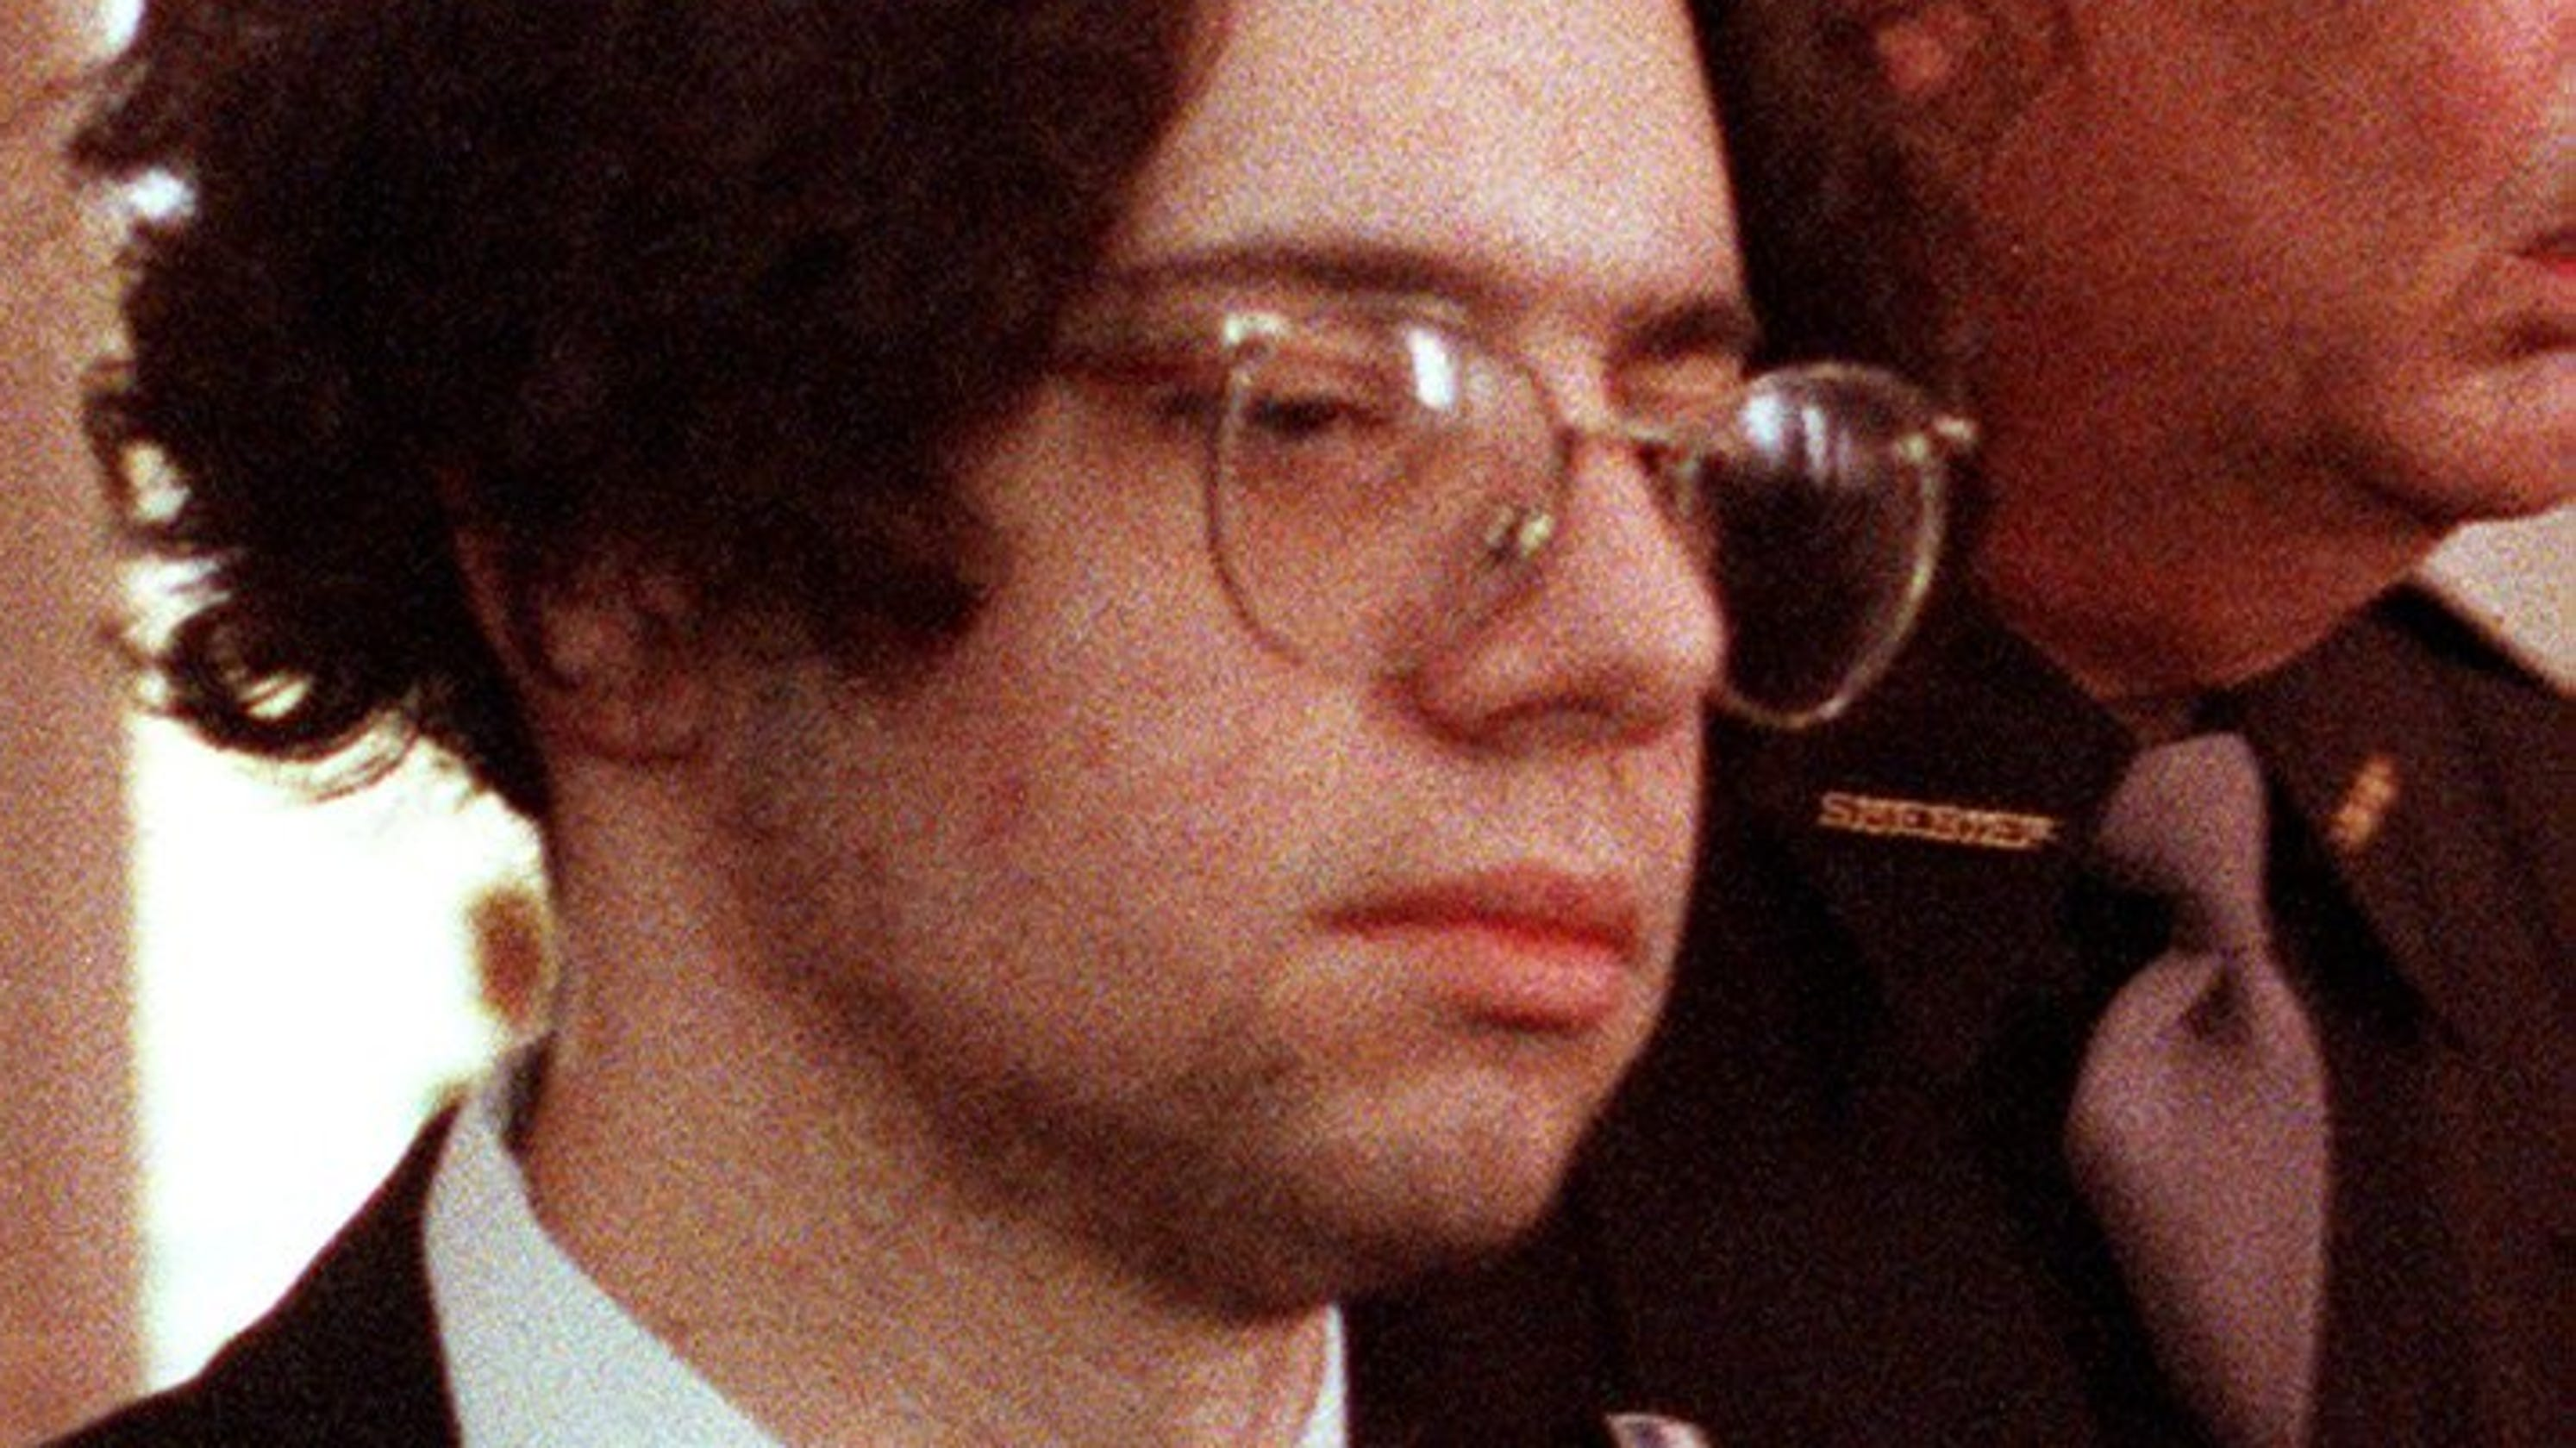 Clay Shrout parole: Man killed his family, held Ryle